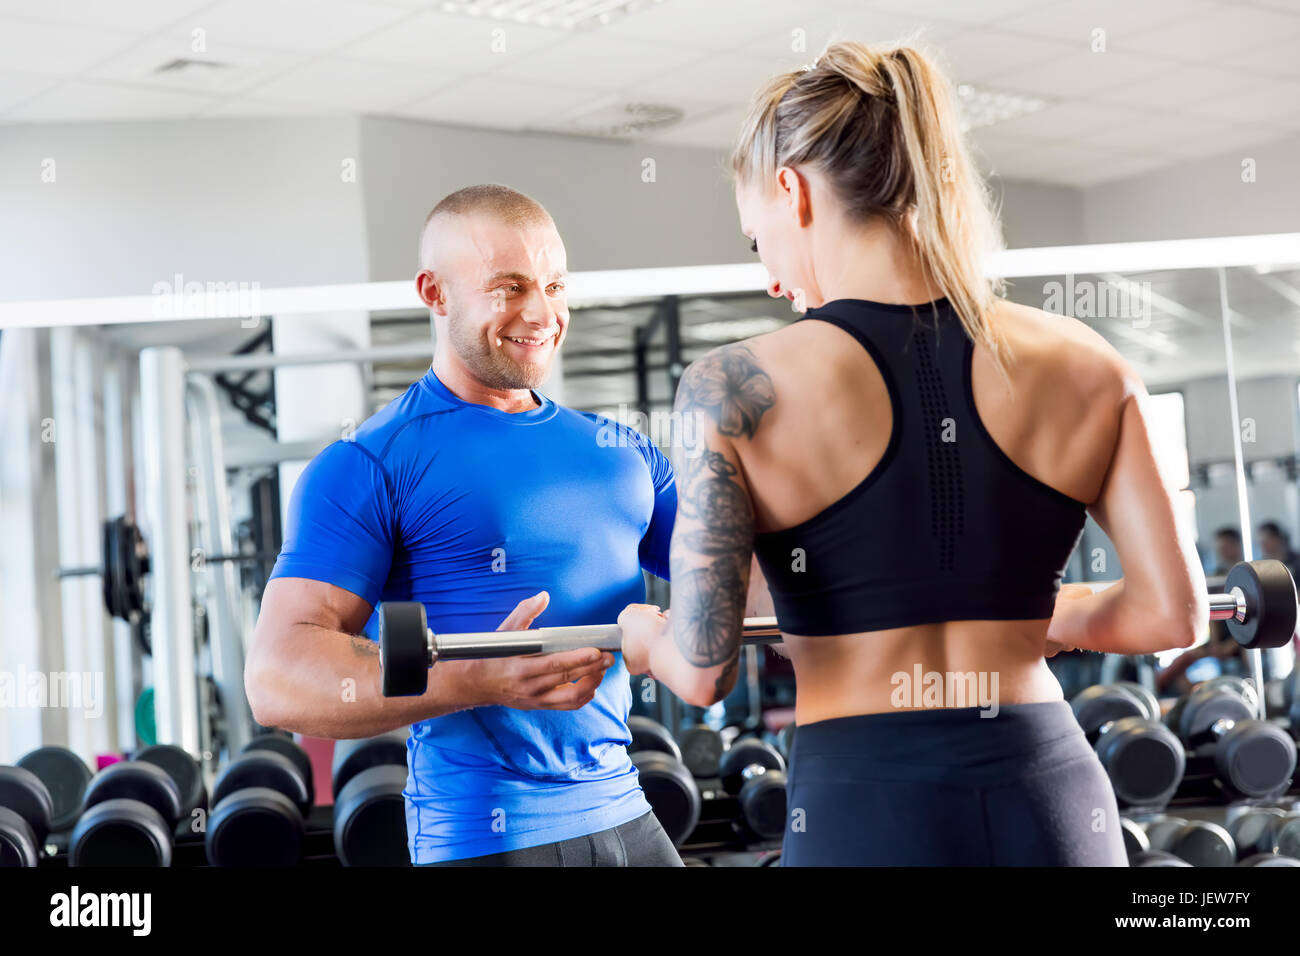 Personal trainer corrects and motivates while bodybuilding training at the gym. Professional help during workout. - Stock Image